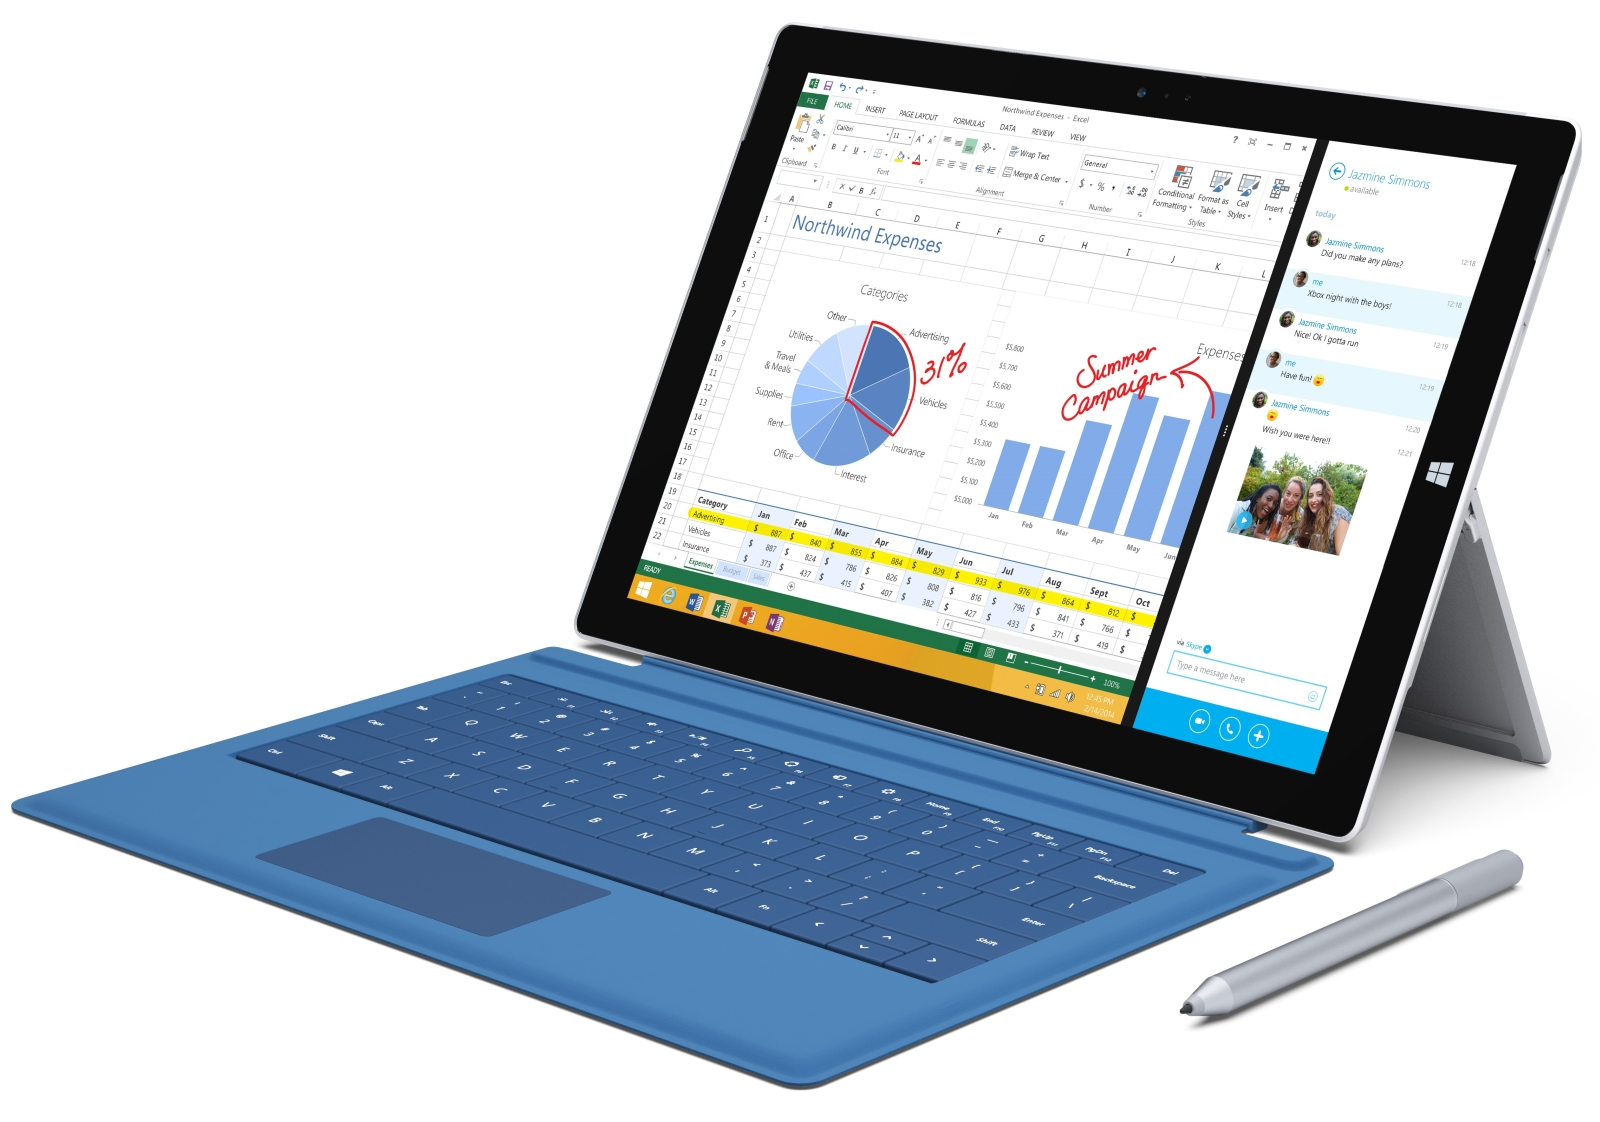 Microsoft Surface Pro 3 Complete Specifications & Details From Launch